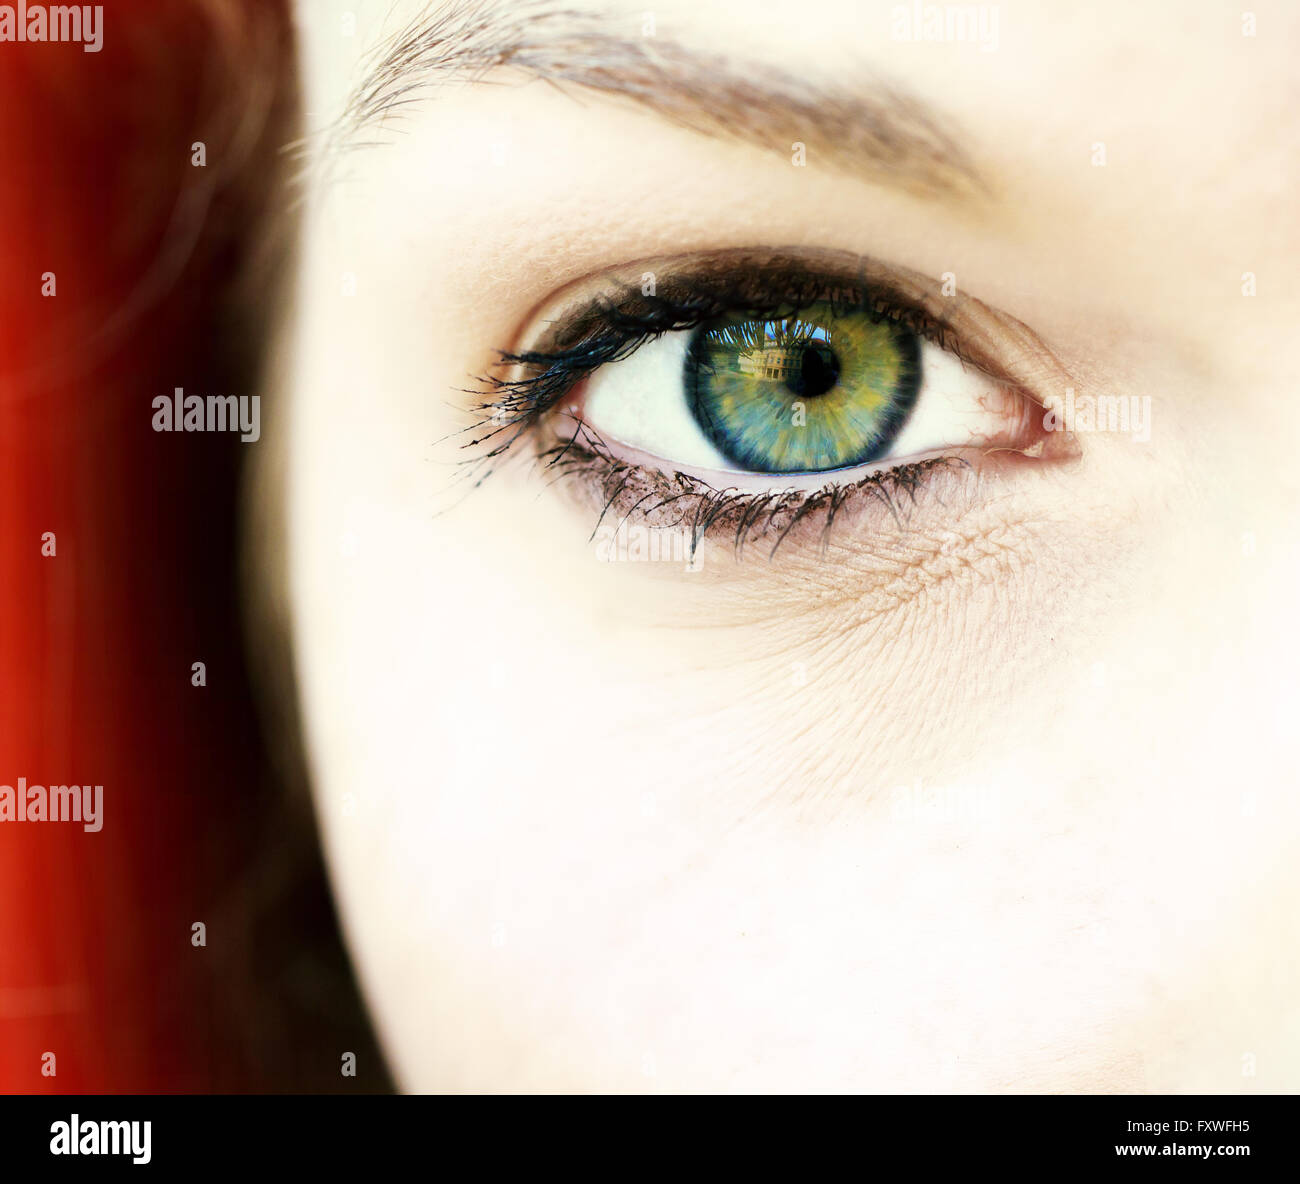 Eye of a young woman - Stock Image